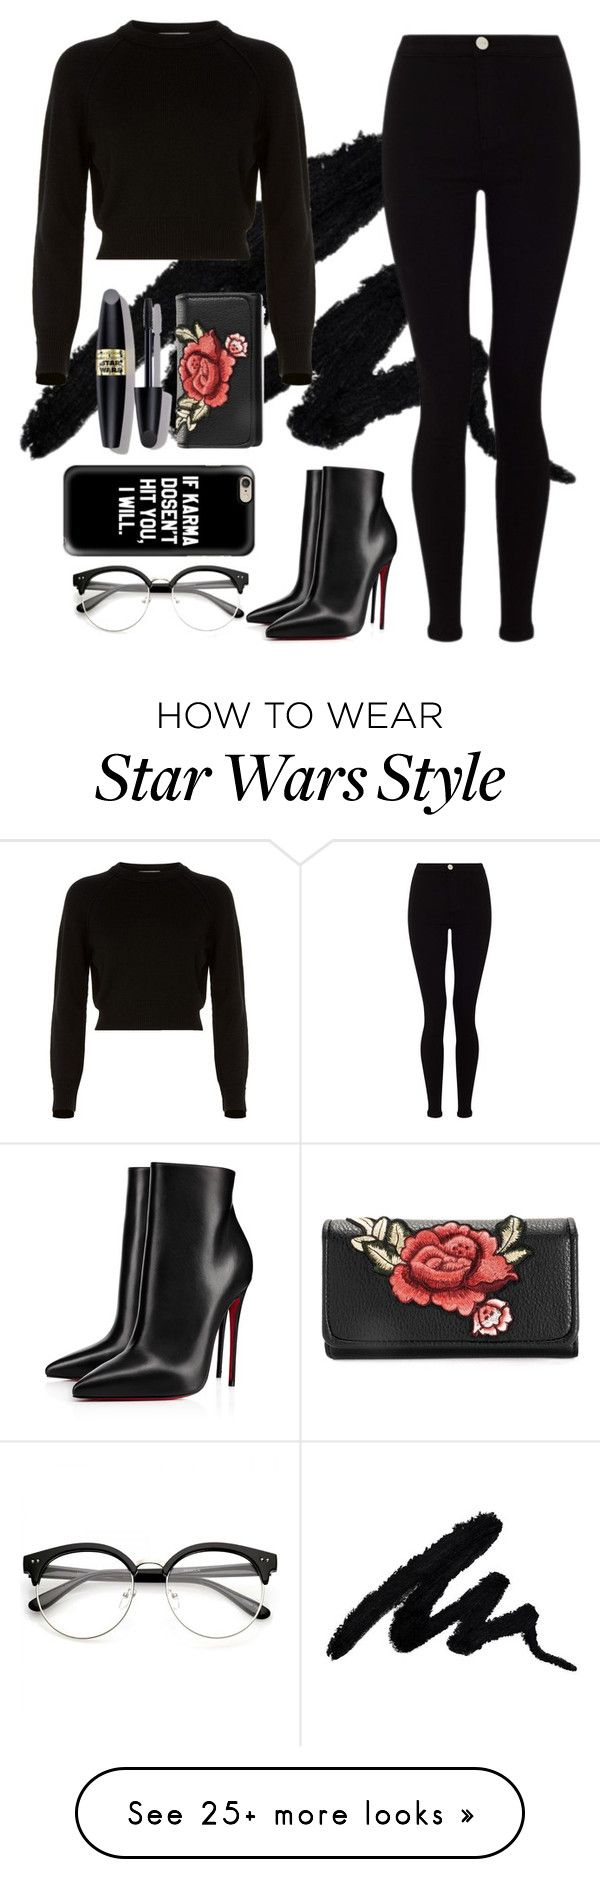 """Black"" by cicilov on Polyvore featuring Helmut Lang, Lipsy, Christian Louboutin, Max Factor and allblackoutfit"